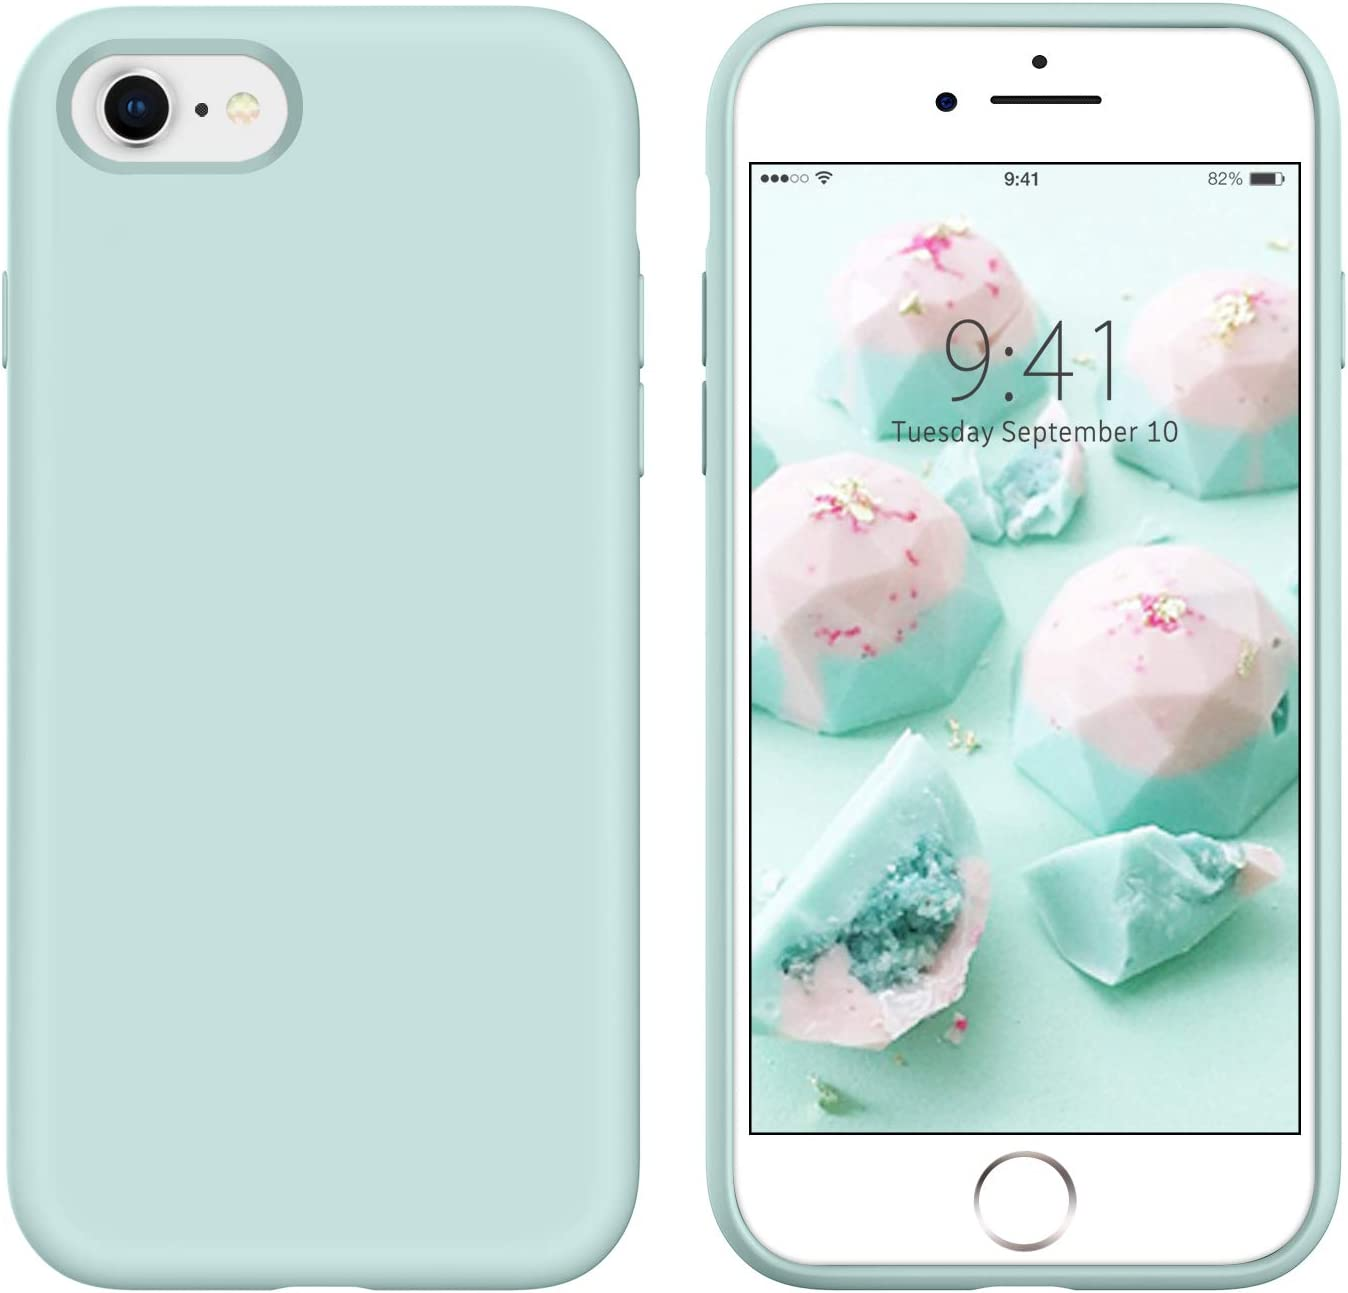 YINLAI iPhone SE 2020 Case iPhone 8 Case iPhone 7 Case Slim Liquid Silicone Hybrid Soft Rubber Shockproof Bumper Protective Phone Cover for iPhone SE 2nd Generation/8/7 Girls Women Pastel Summer Mint